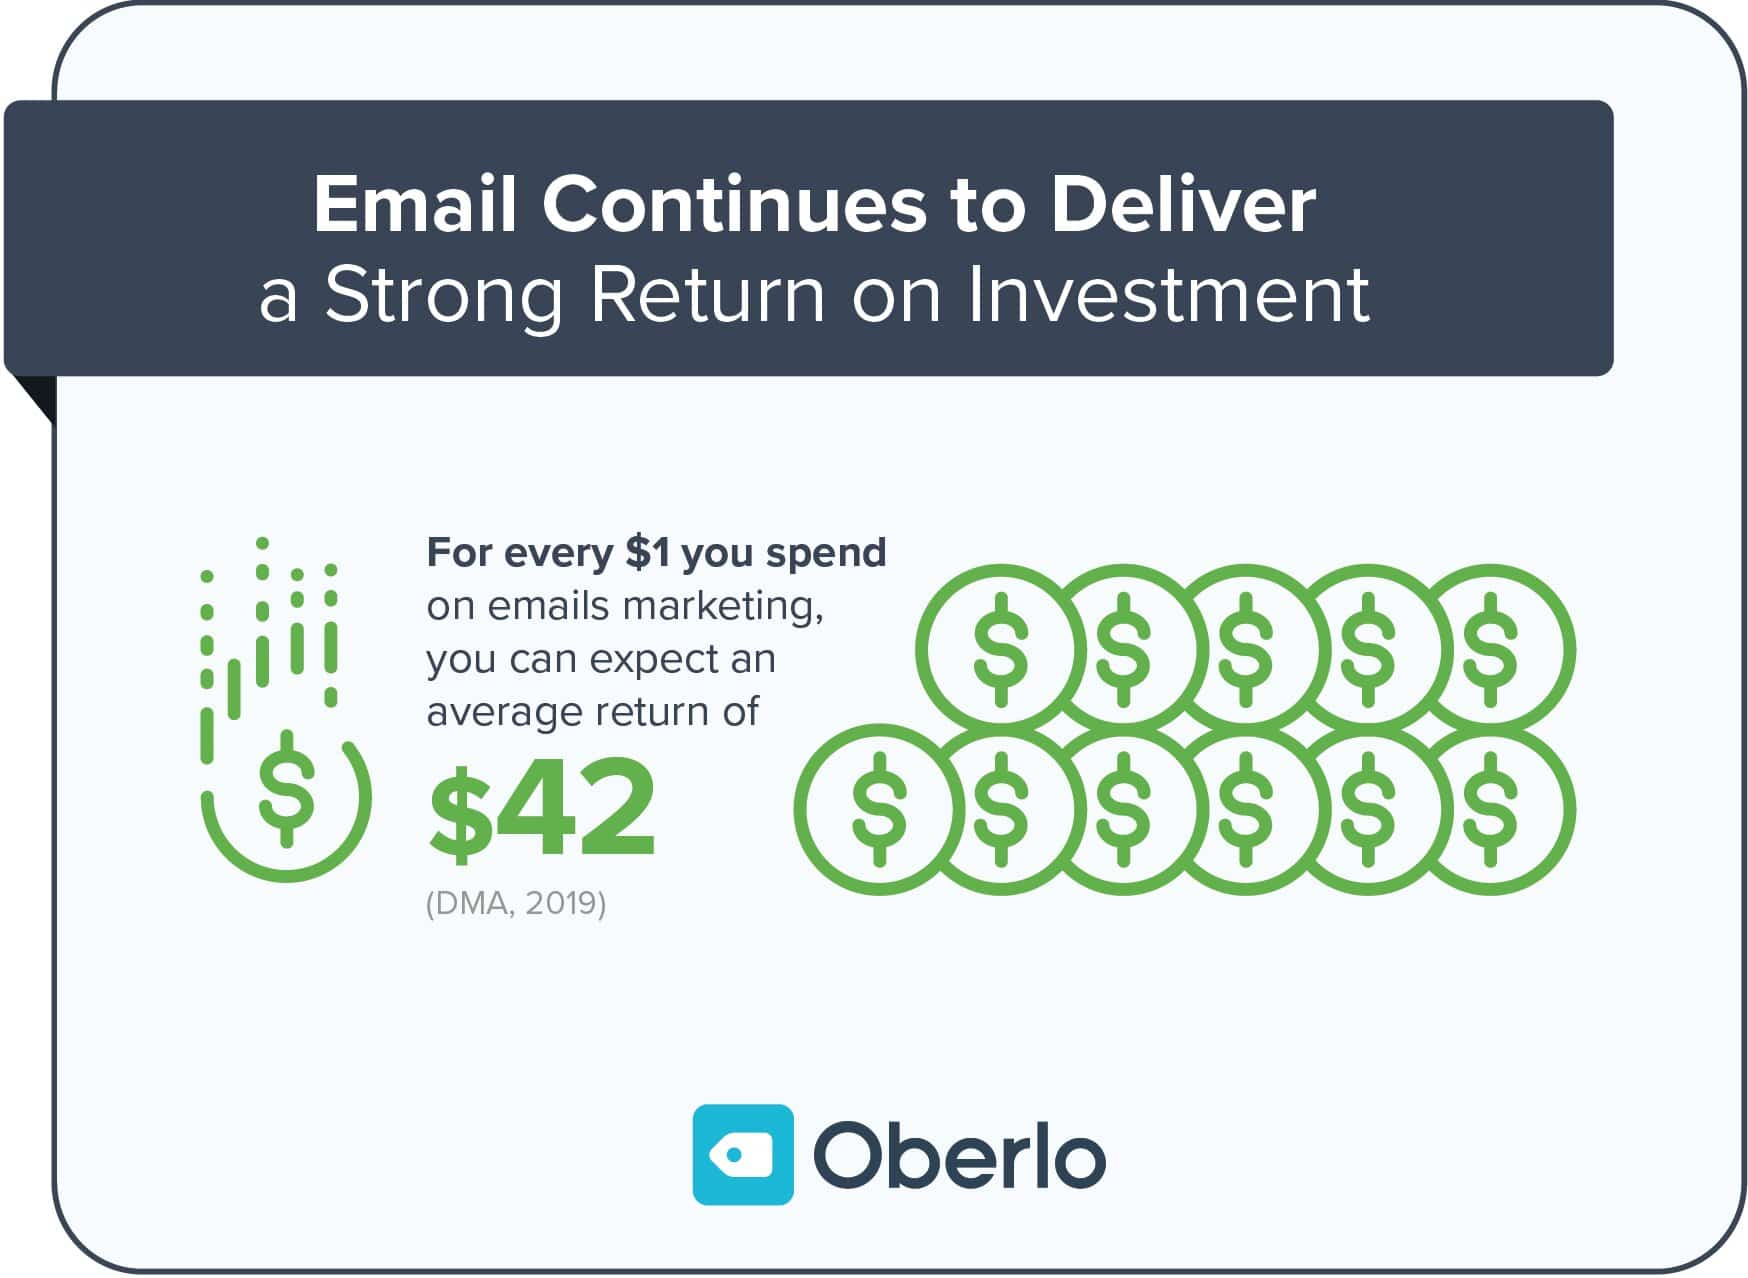 Email marketing ROI for email deliverability